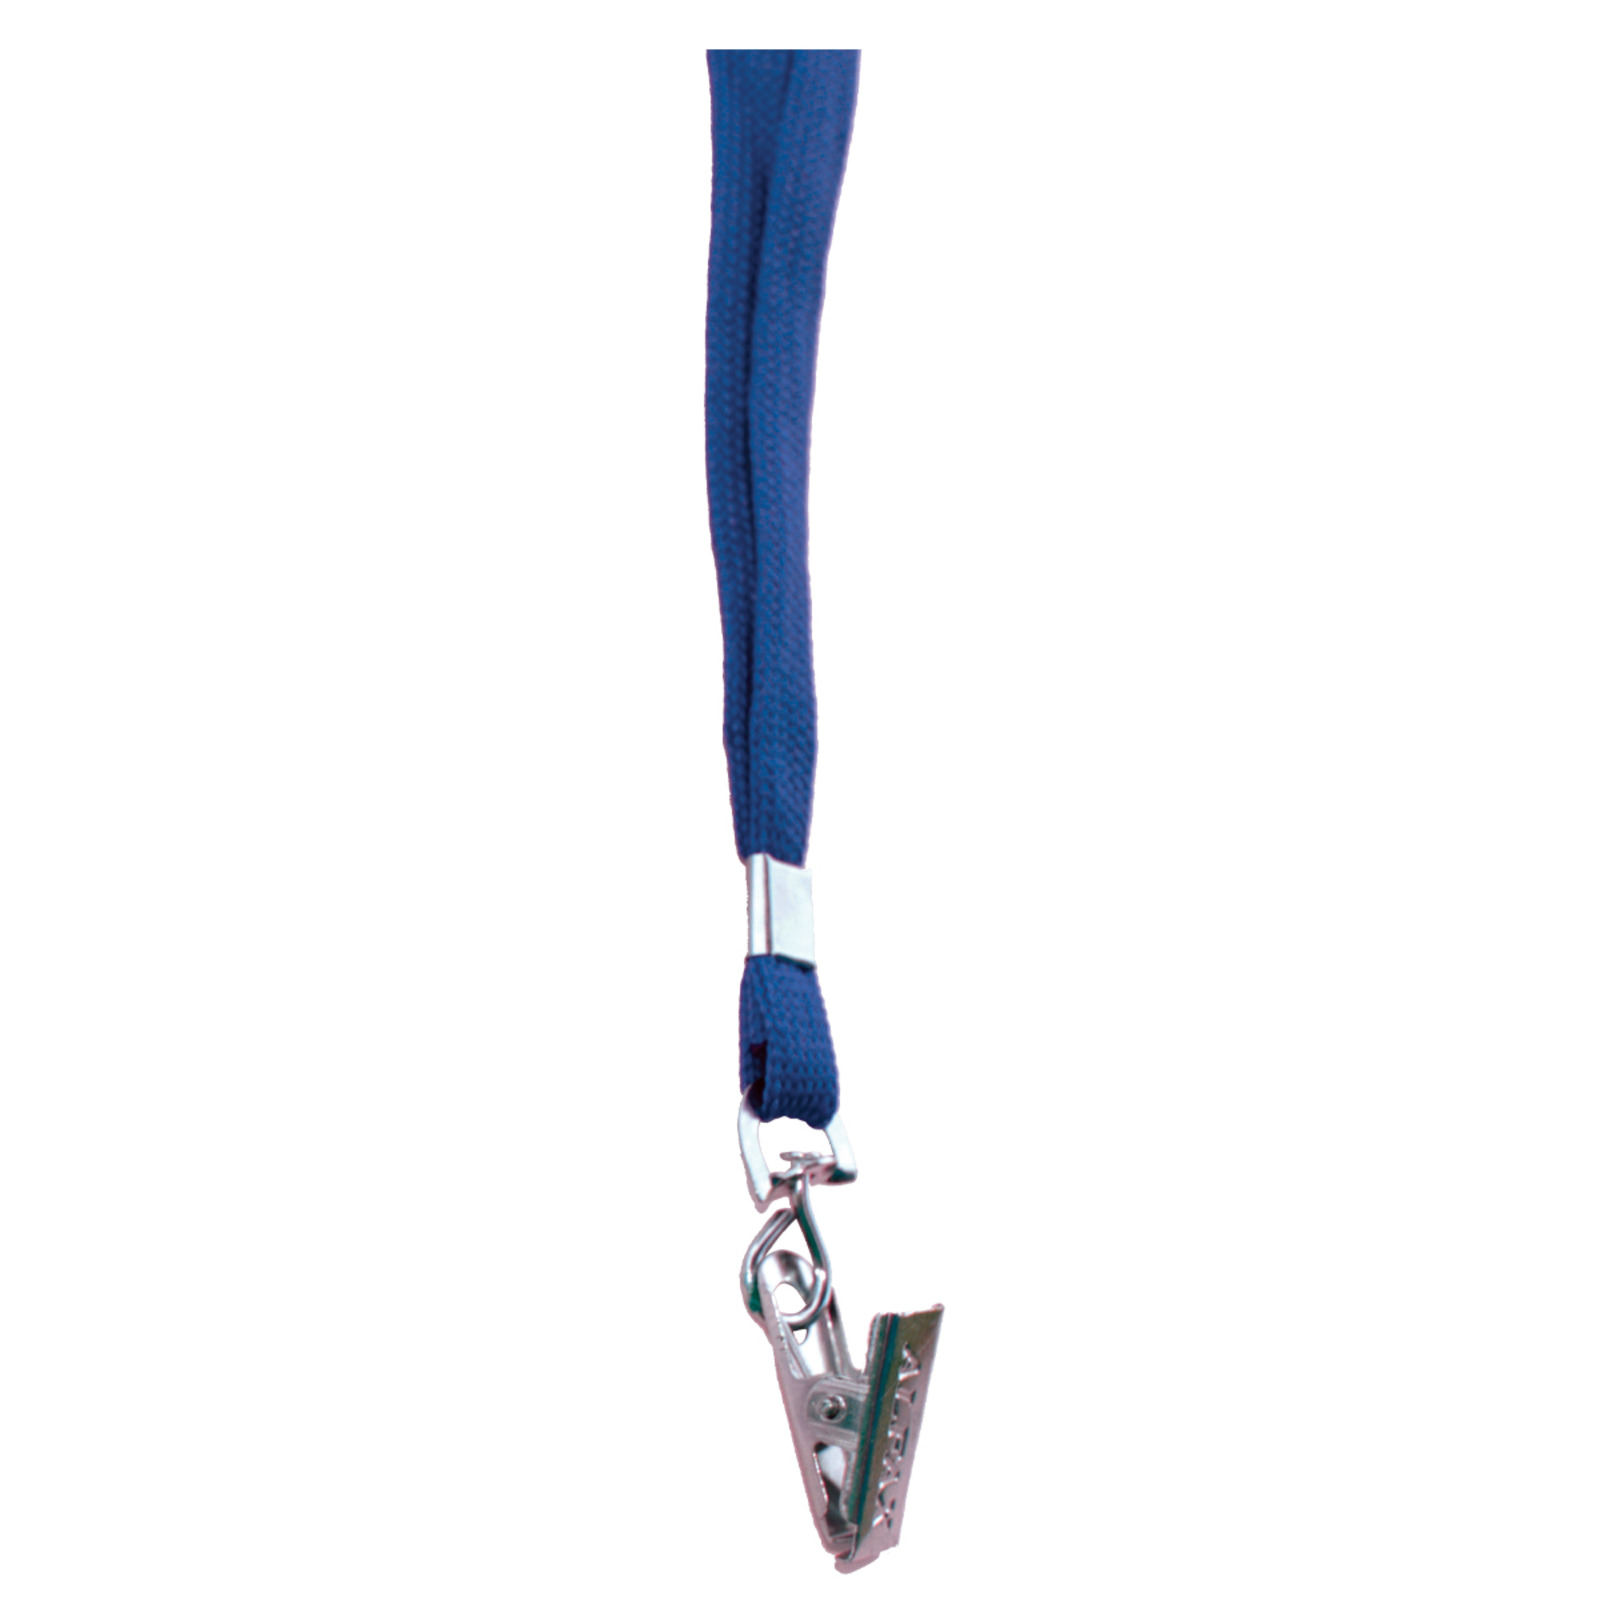 ALFAX 112 Lanyard with Metal Clip 10's Blue